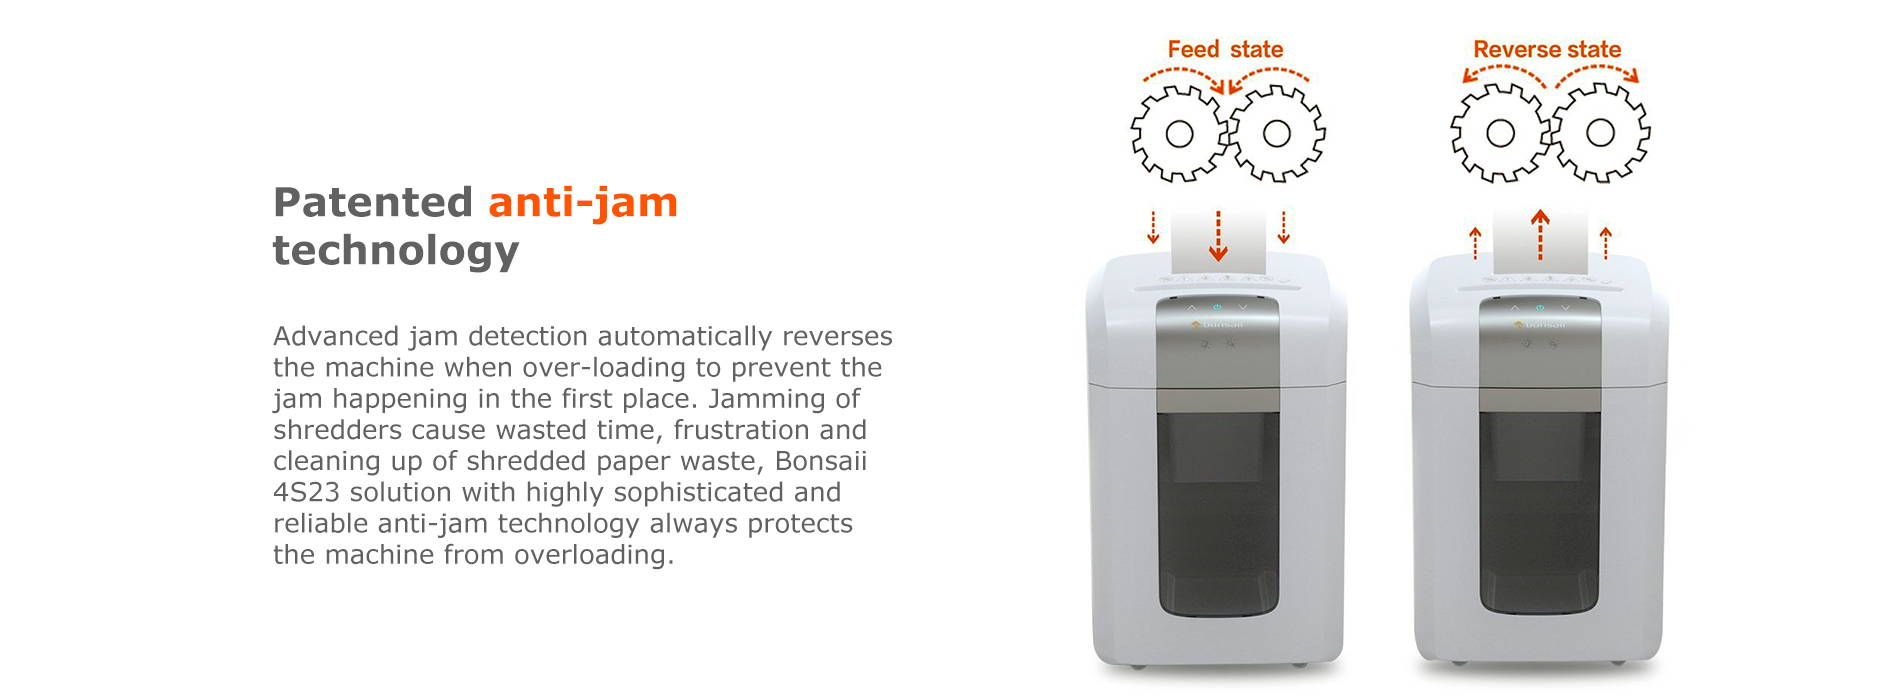 Patented anti-jam technology Advanced jam detection automatically reverses the machine when over-loading to prevent the jam happening in the first place. Jamming of shredders cause wasted time, frustration and cleaning up of shredded paper waste, Bonsaii 4S23 solution with highly sophisticated and reliable anti-jam technology always protects the machine from overloading.